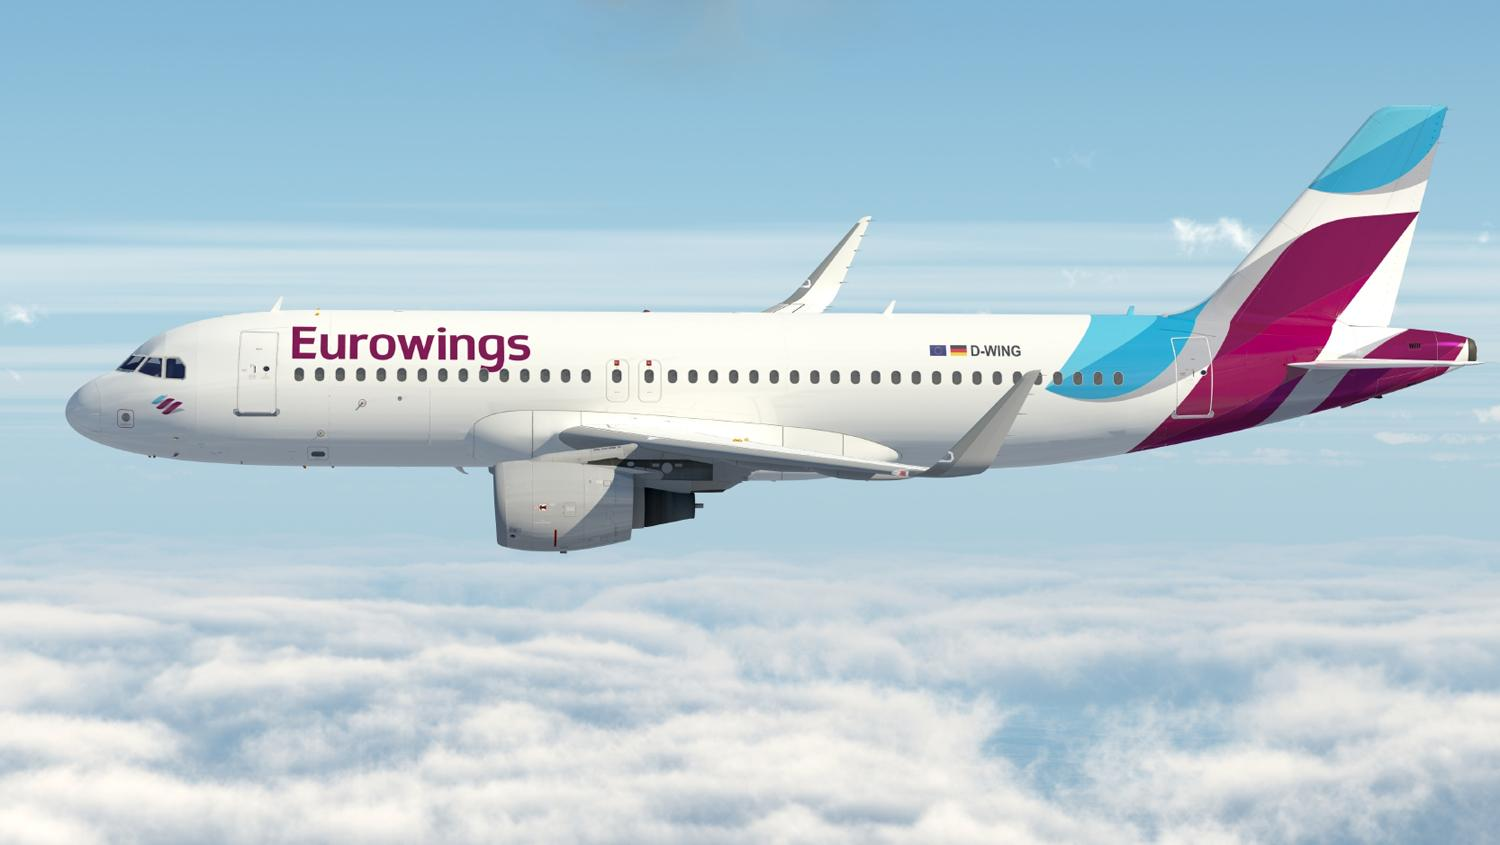 Eurowings flew 20,000 Germans home last week.